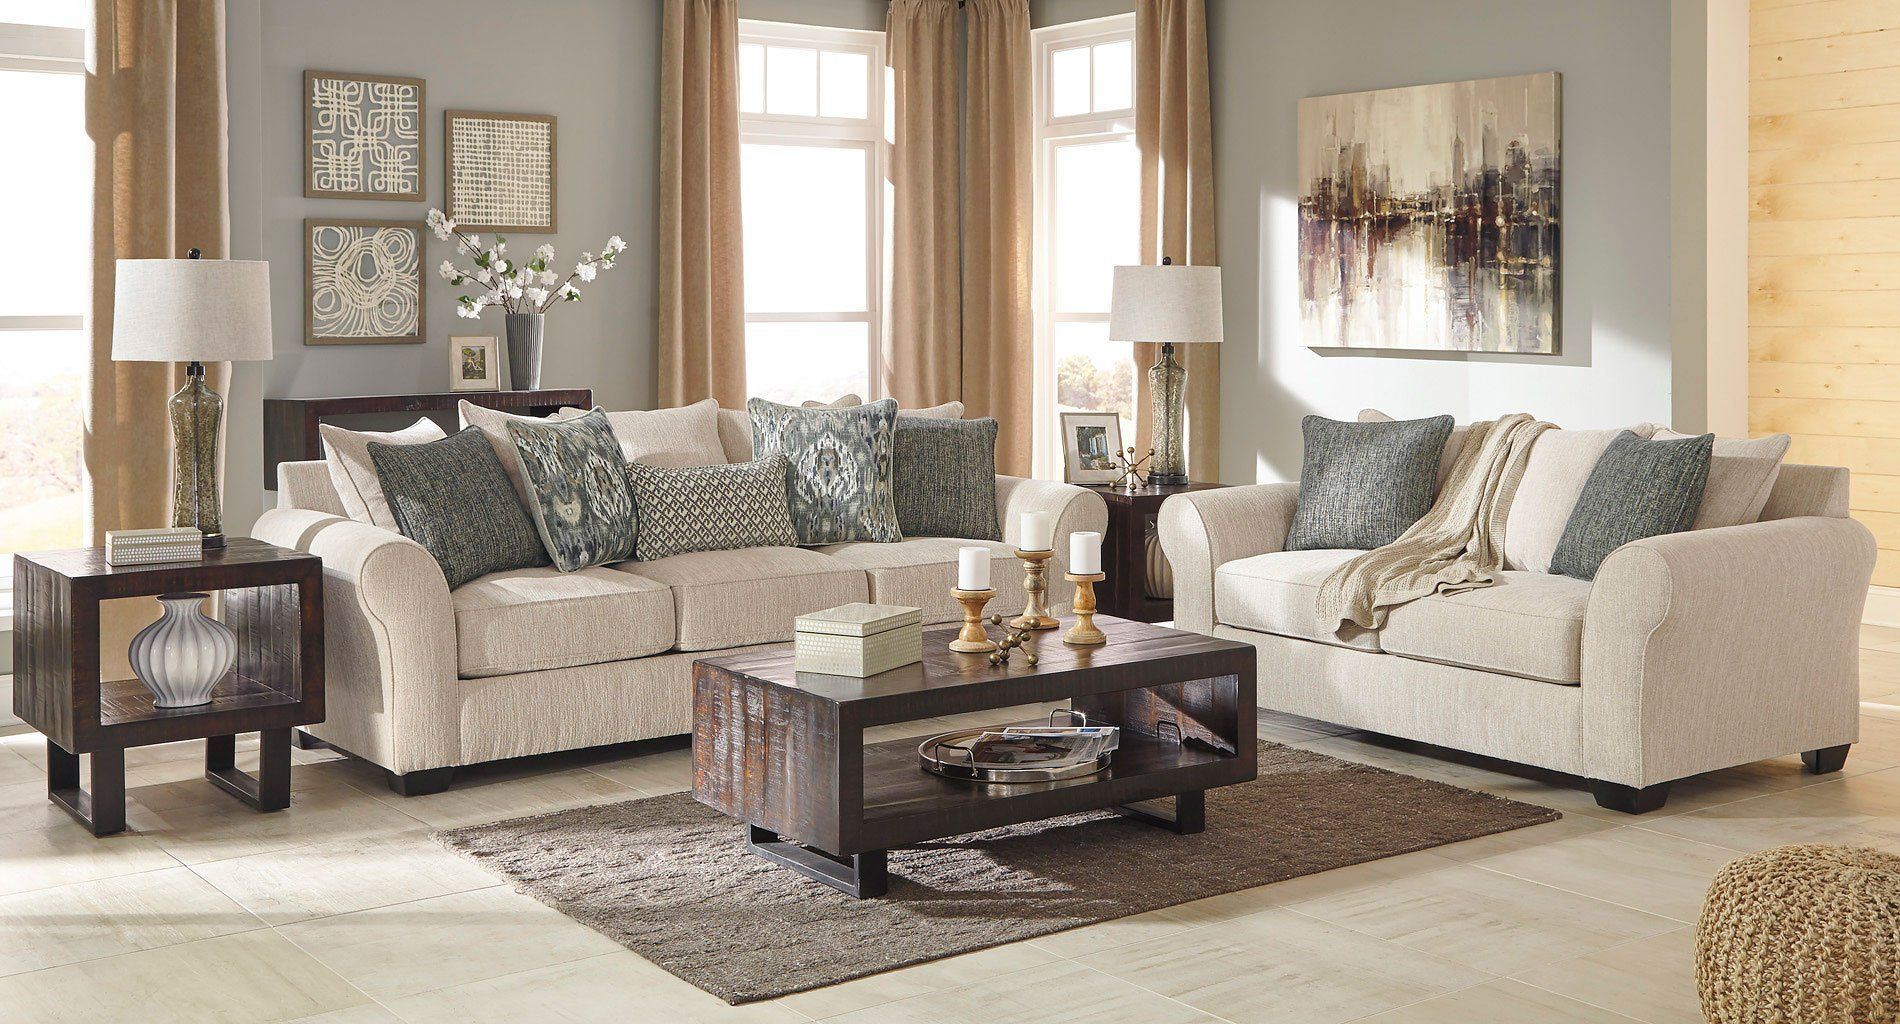 Silsbee Sepia Living Room Set In 2019 Family Room Pinterest pertaining to Comfortable Living Room Sets